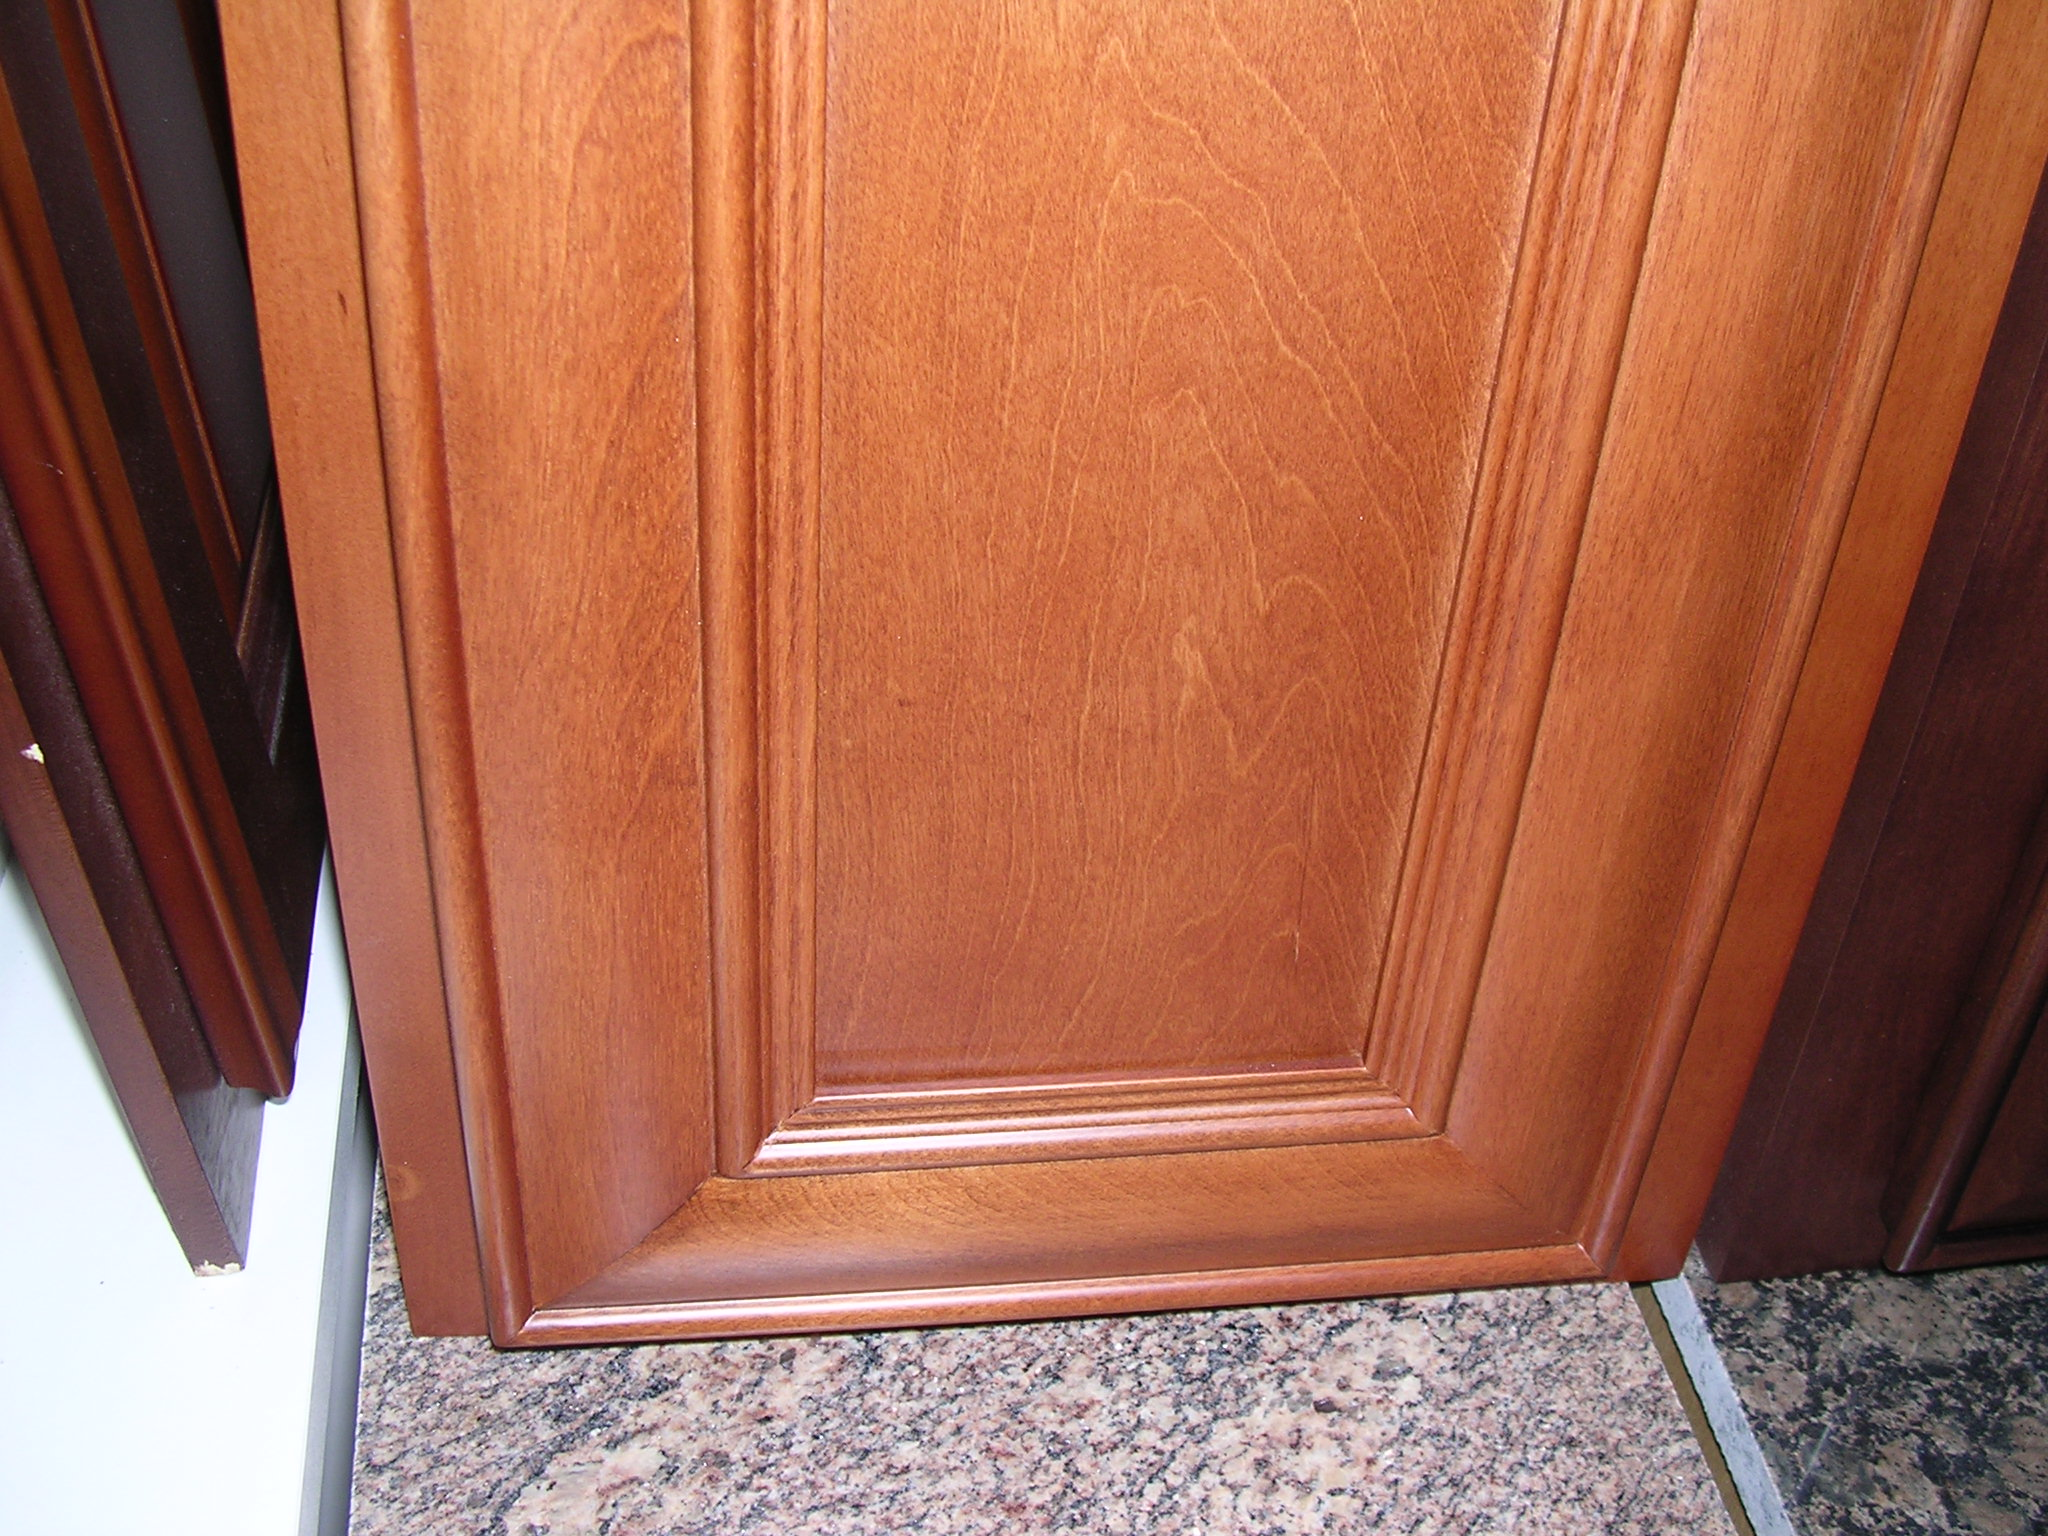 Honey Glazed Birch Kitchen Cabinets